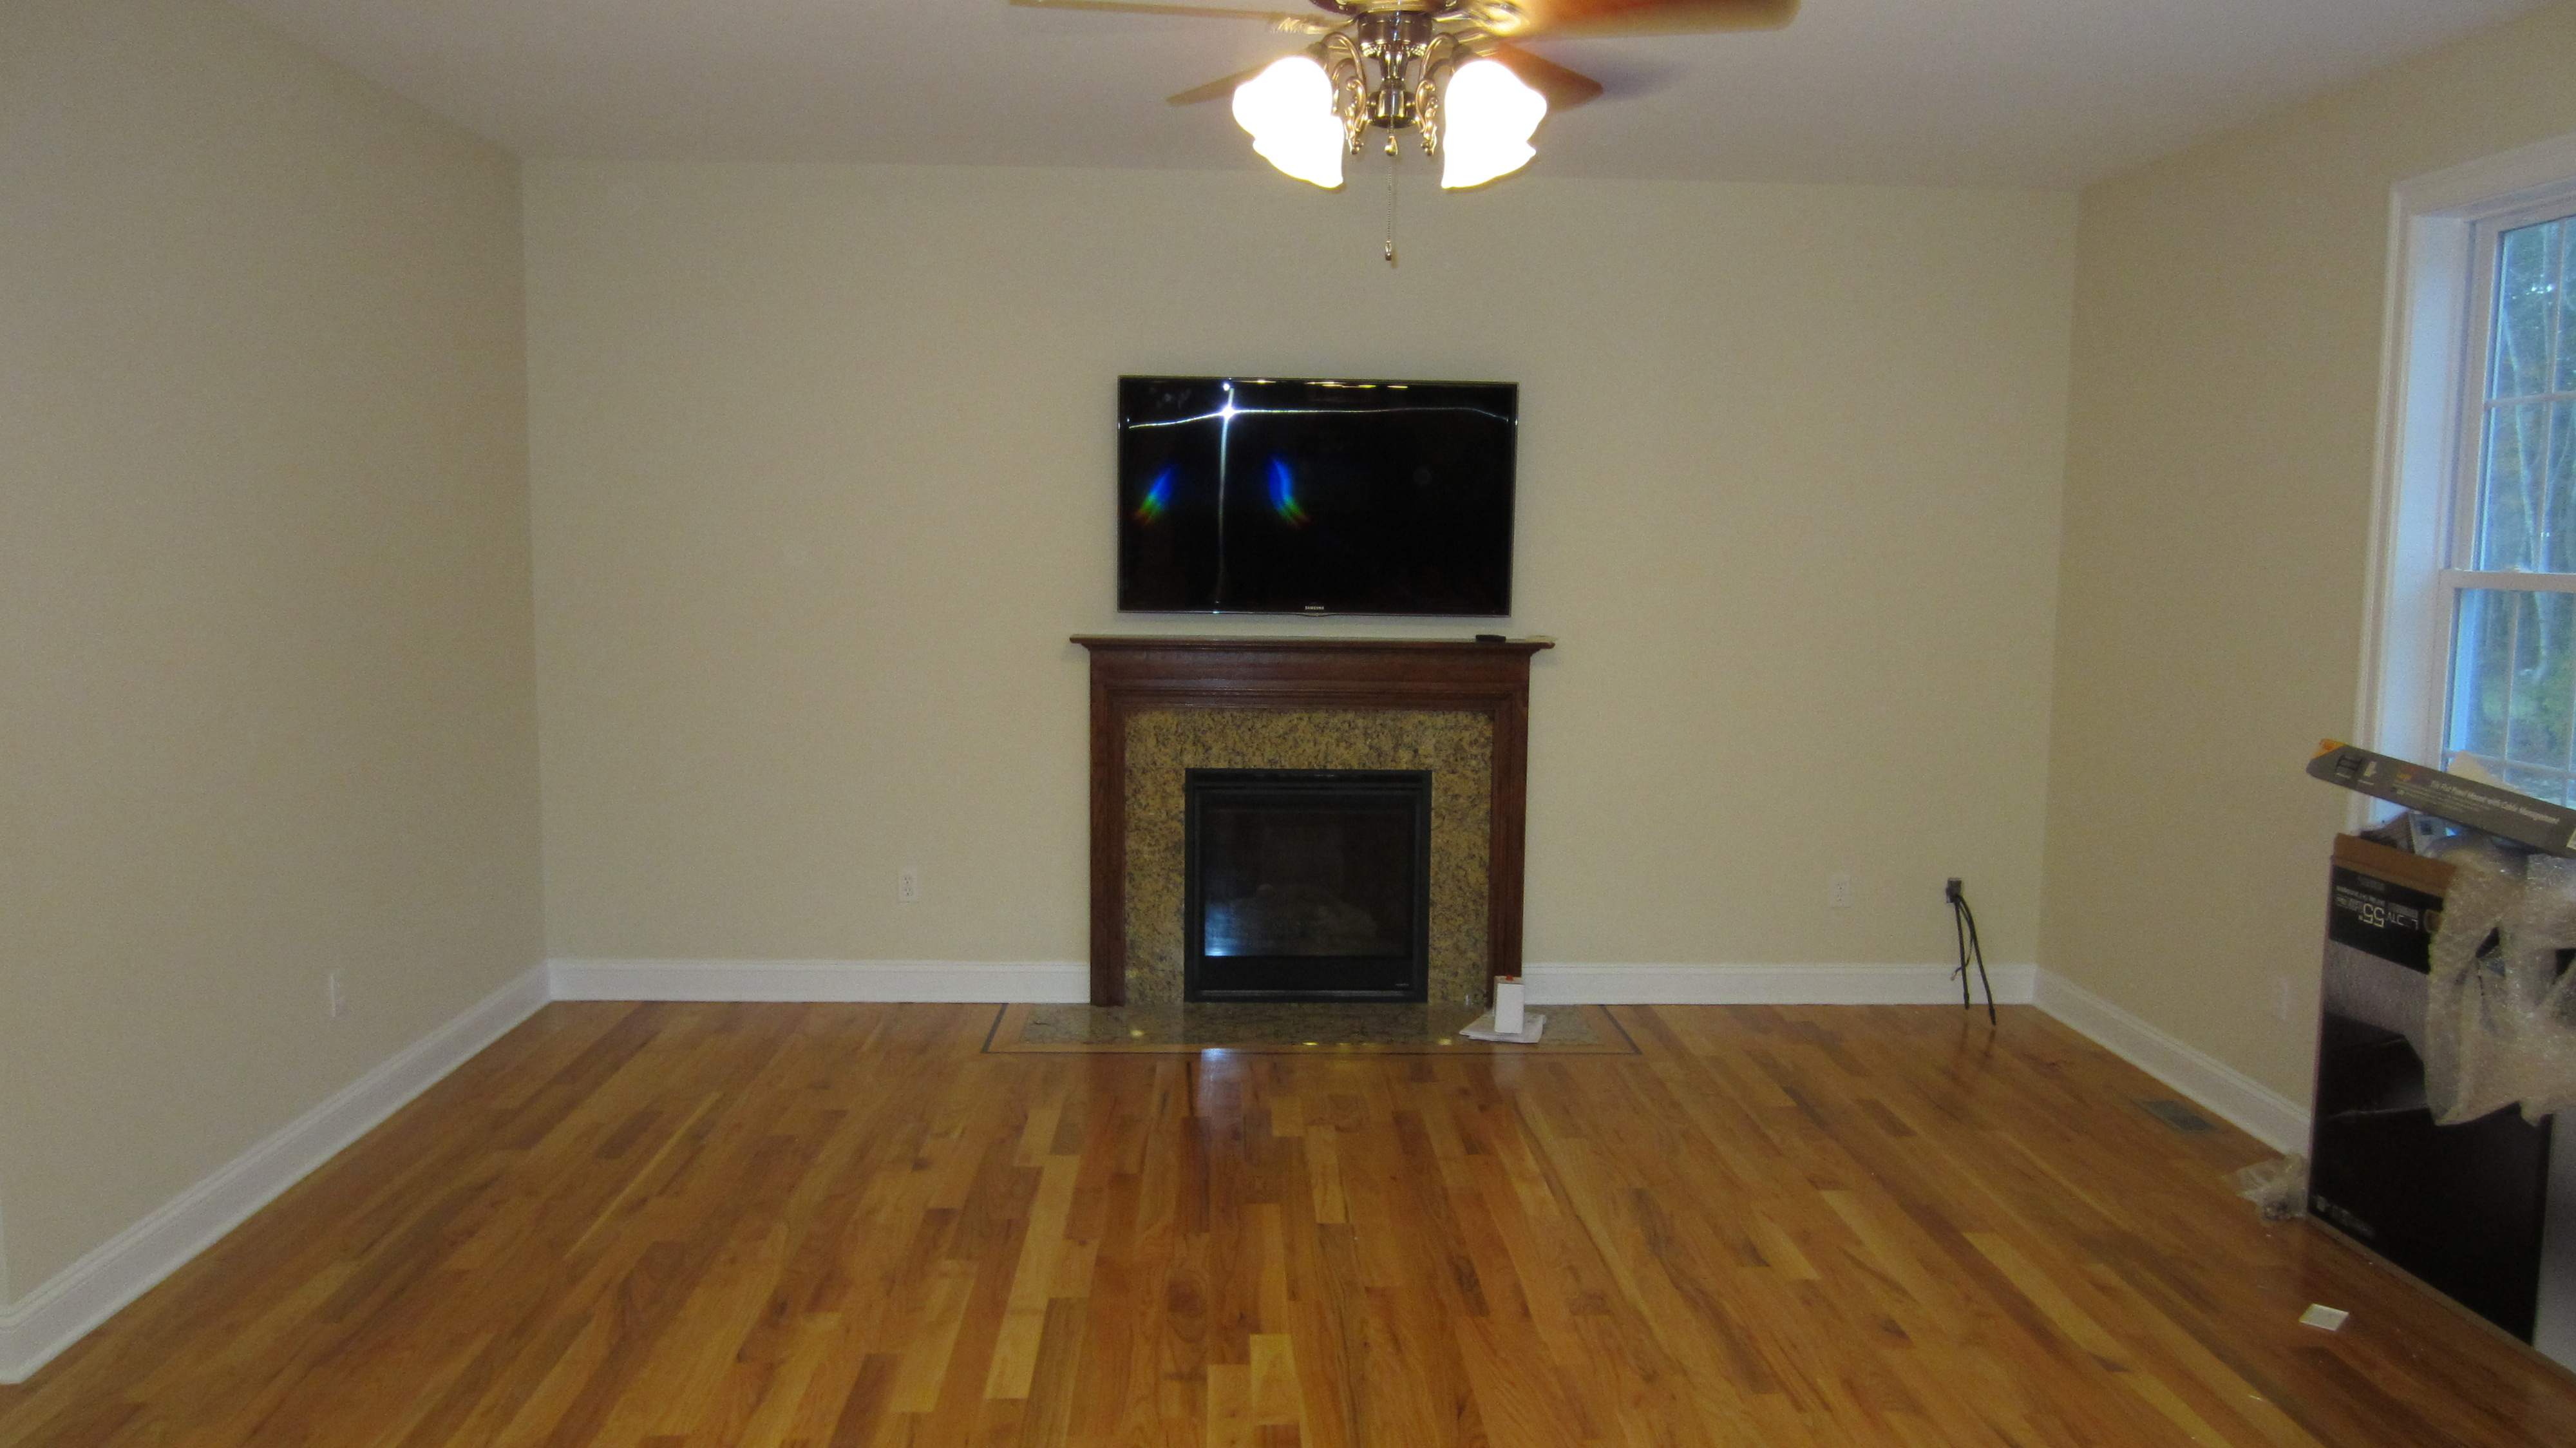 tv over fireplace installation home theater installation. Black Bedroom Furniture Sets. Home Design Ideas